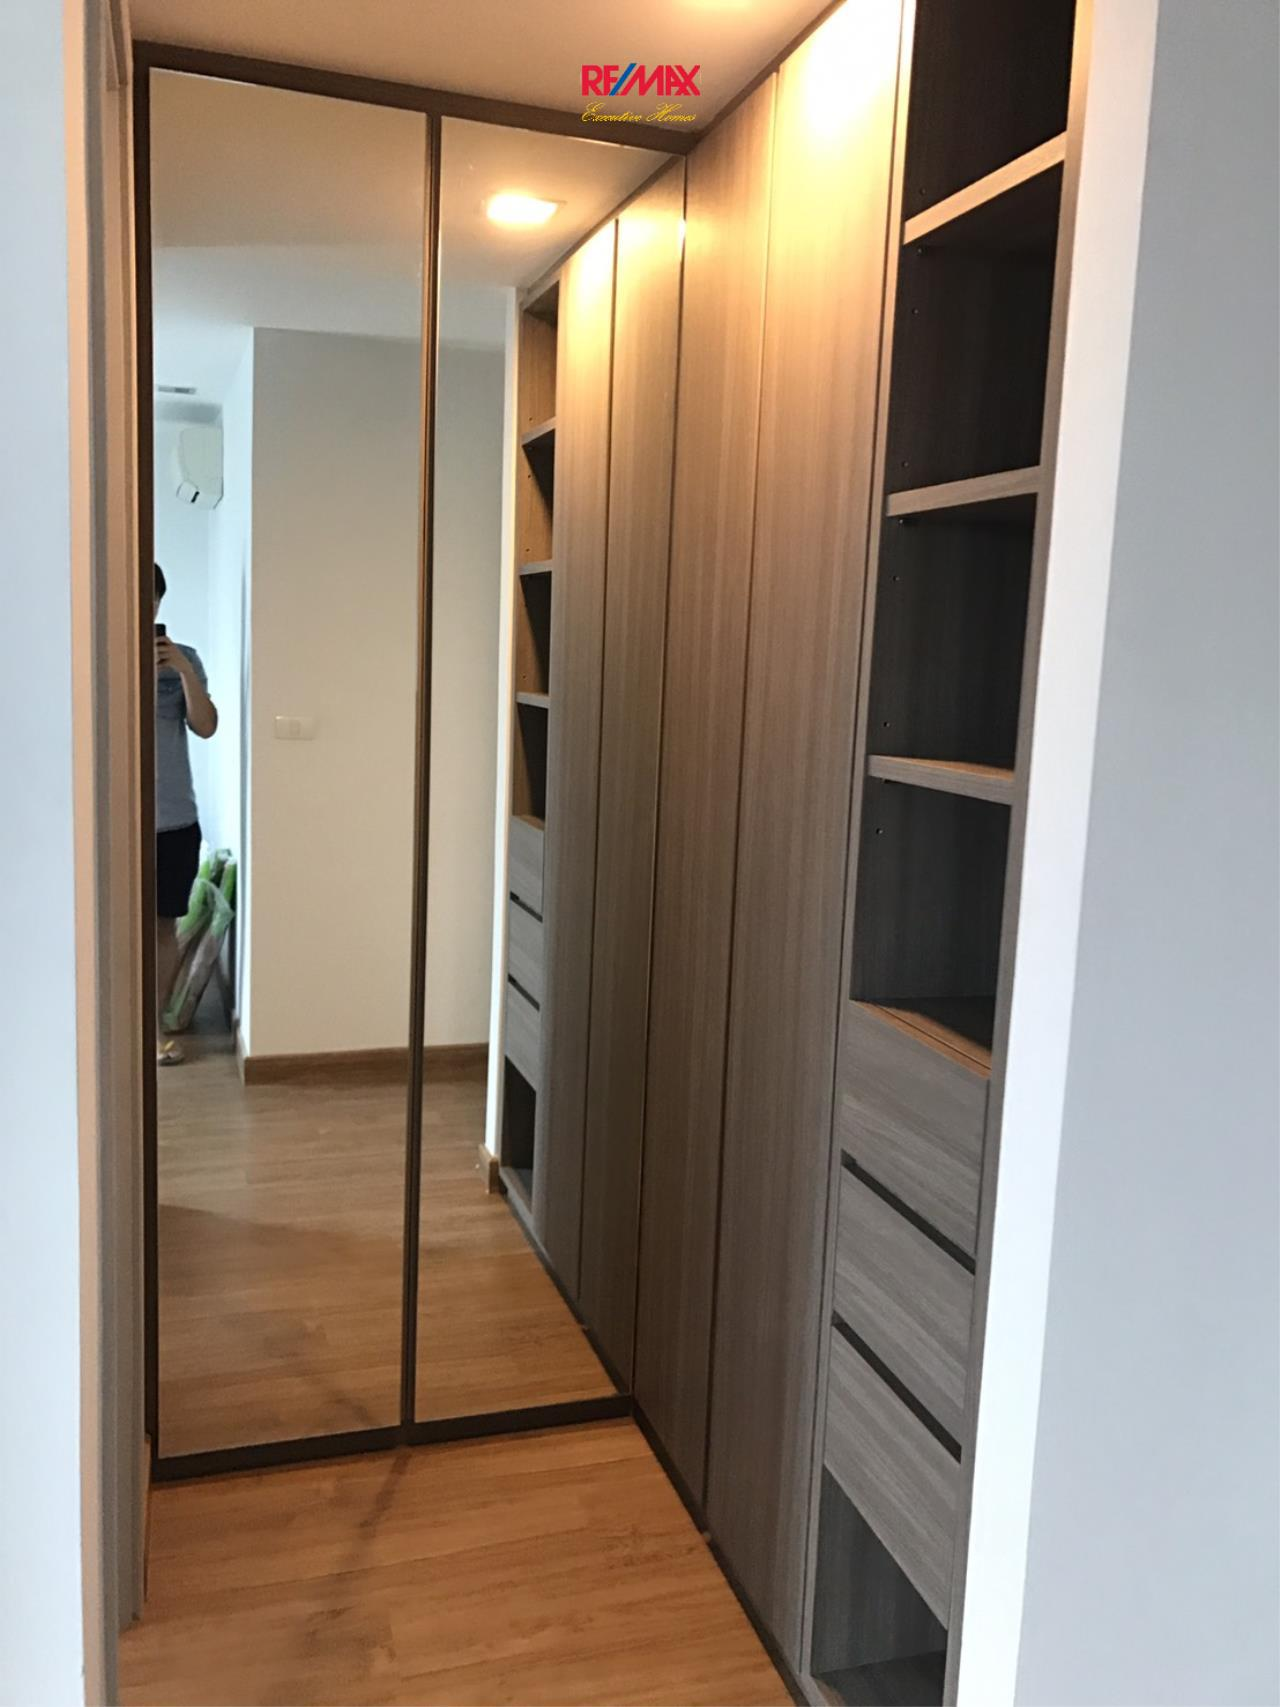 RE/MAX Executive Homes Agency's Nice 2 Bedroom for Sale Thru Thonglor 5